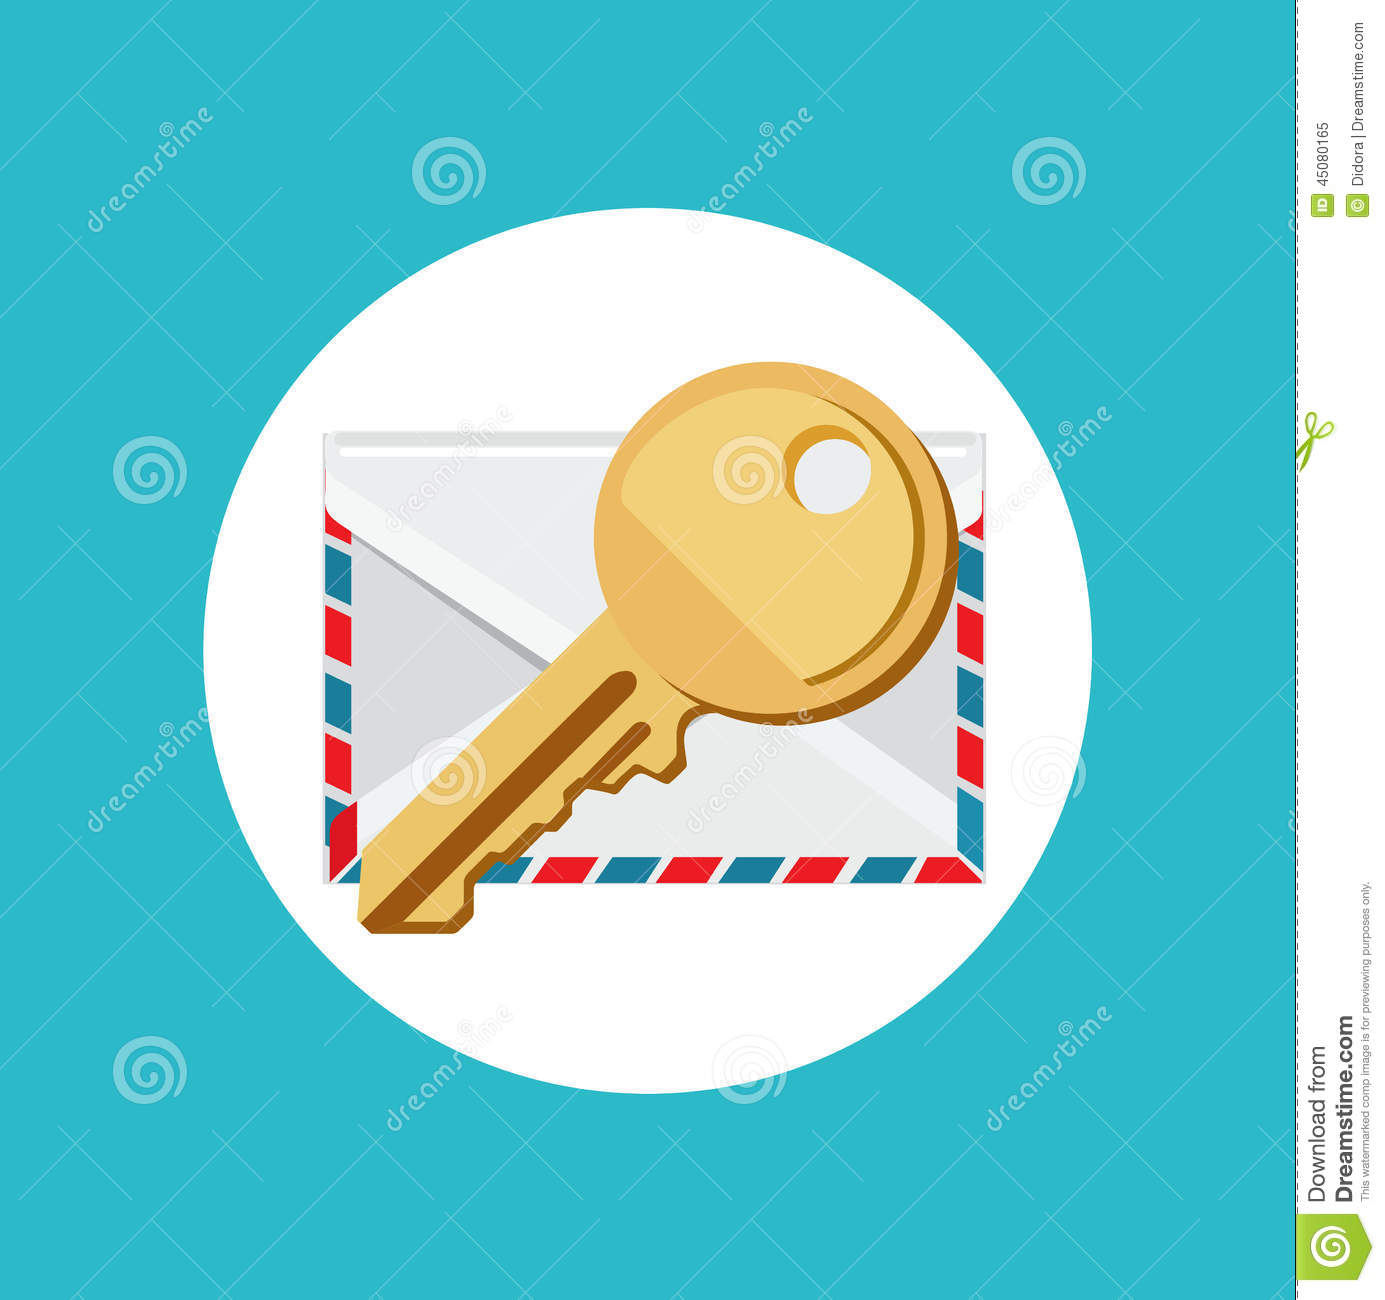 Envelope Flat Design Vector Icon Vector Illustration